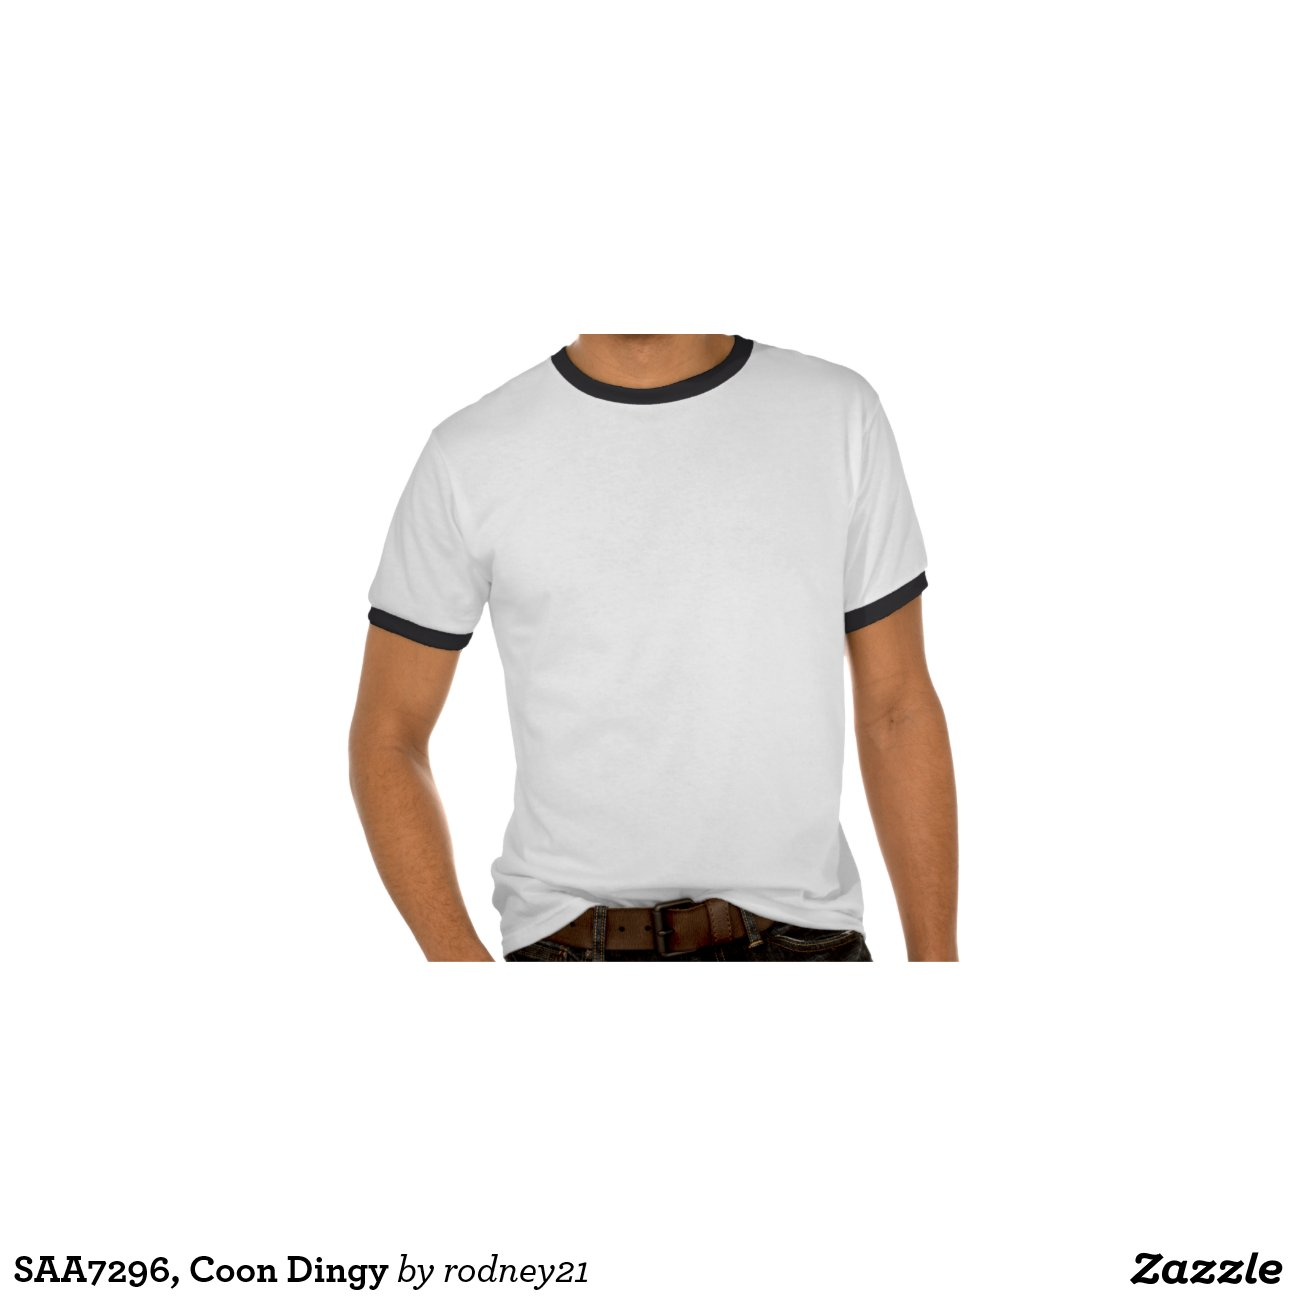 Saa7296 coon dingy shirt zazzle for How to whiten dingy white t shirts